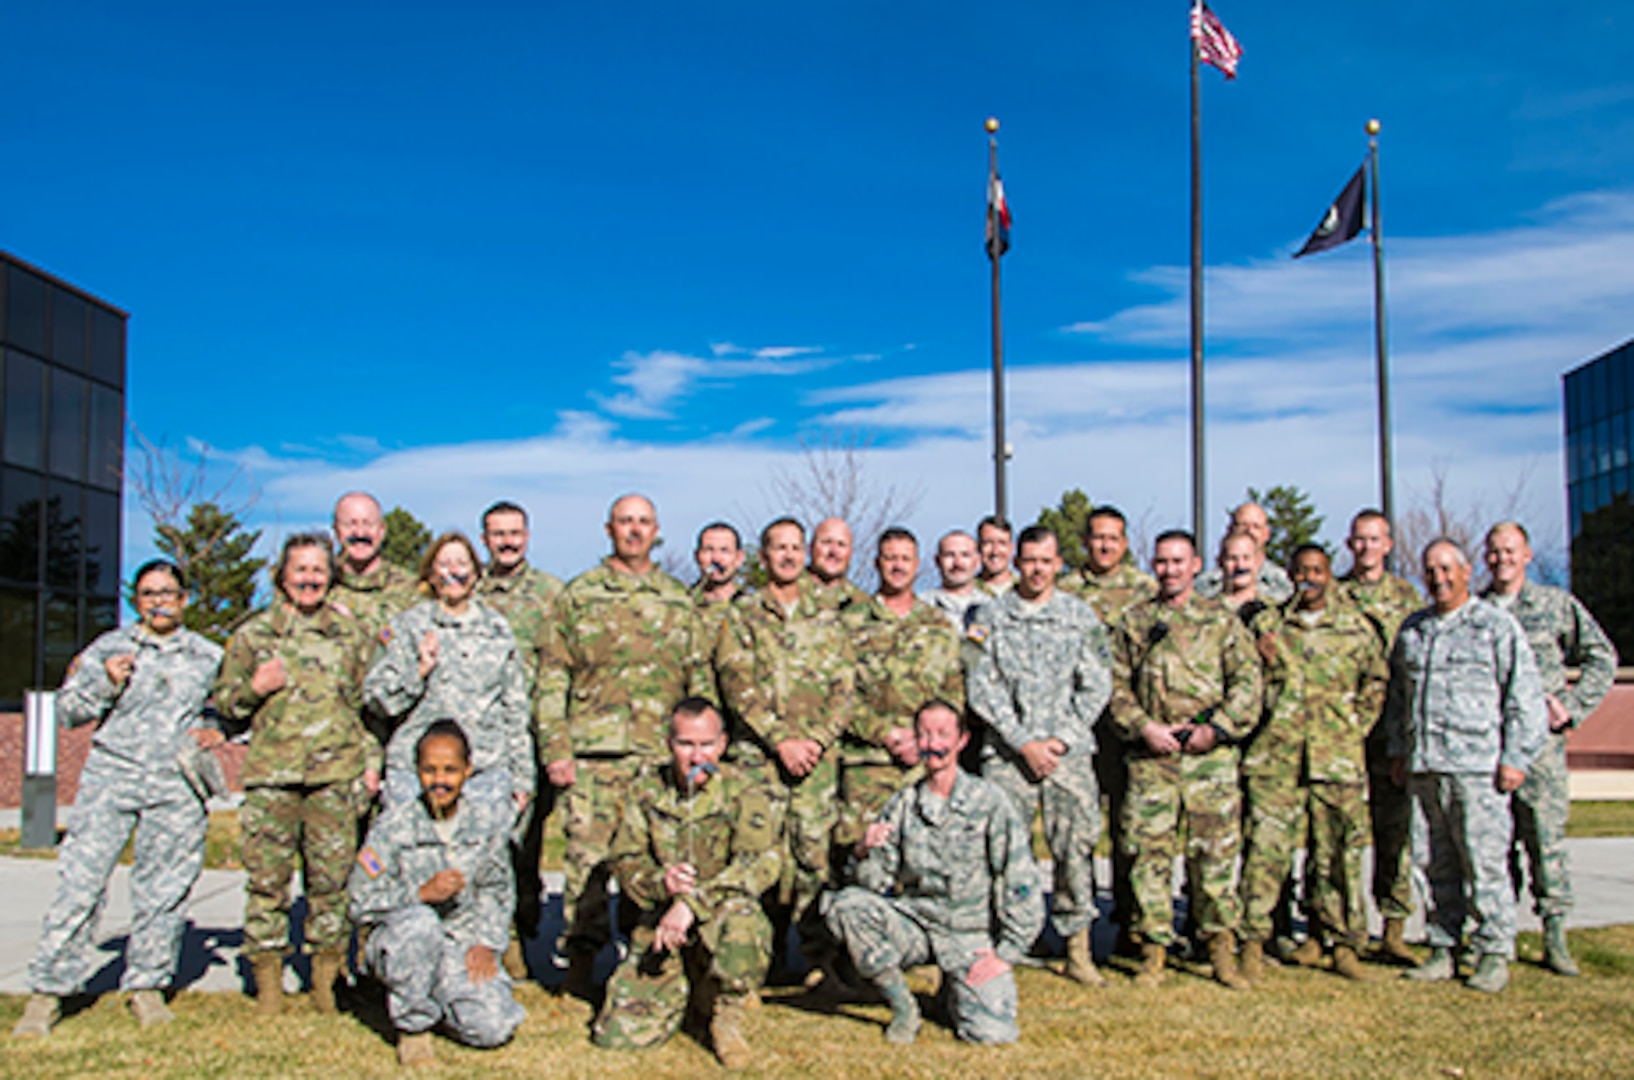 Service members from Joint Force Headquarters - Colorado joined the Adjutant General, Maj. Gen. H. Michael Edwards, for a MOvember group photo, to honor the occasion.